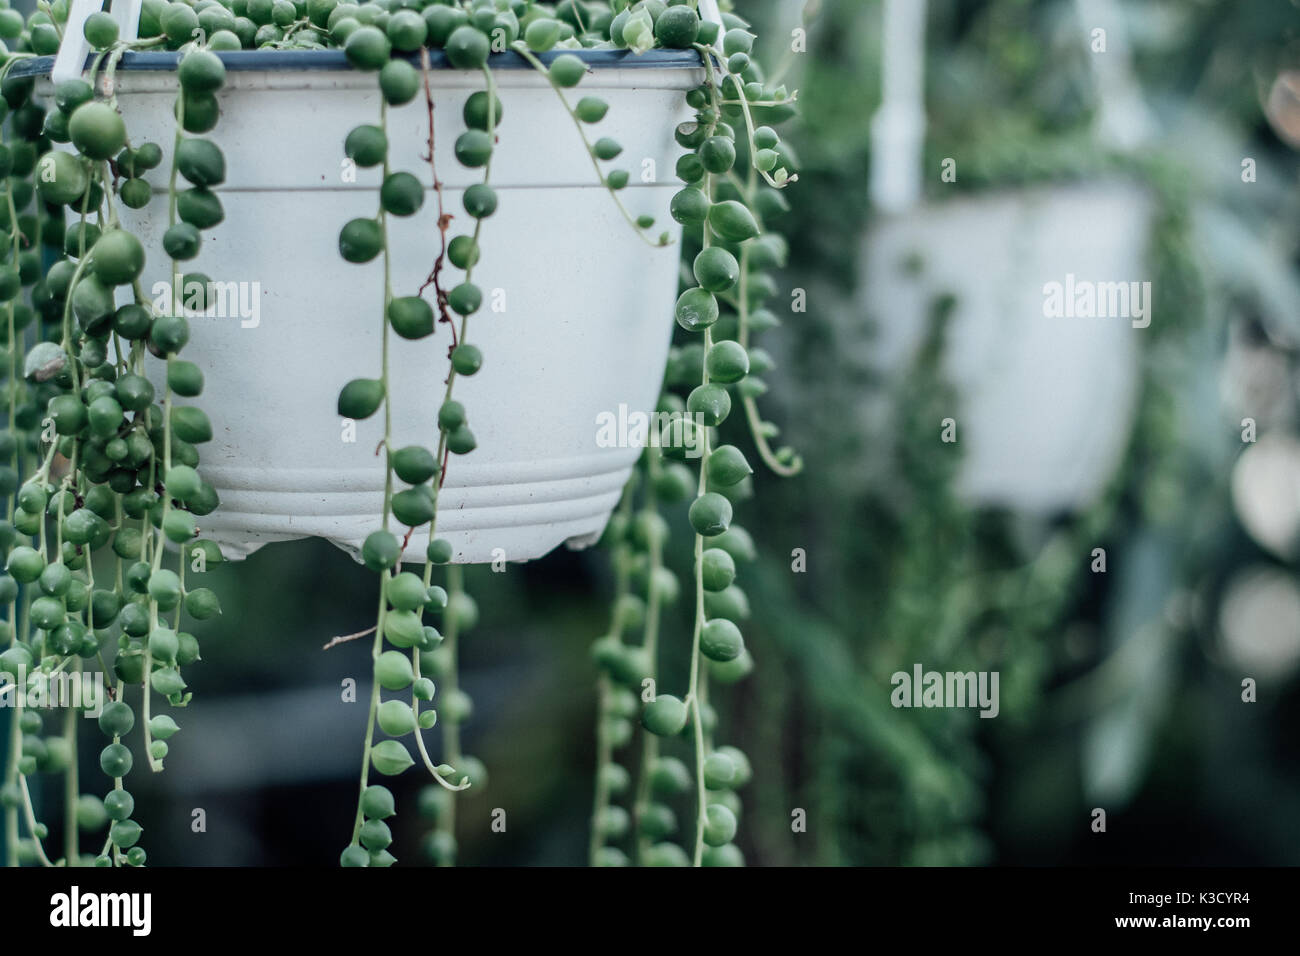 string of pearls succulent plant hanging in a greenhouse, symbolizing calm and serenity with room for copy - Stock Image